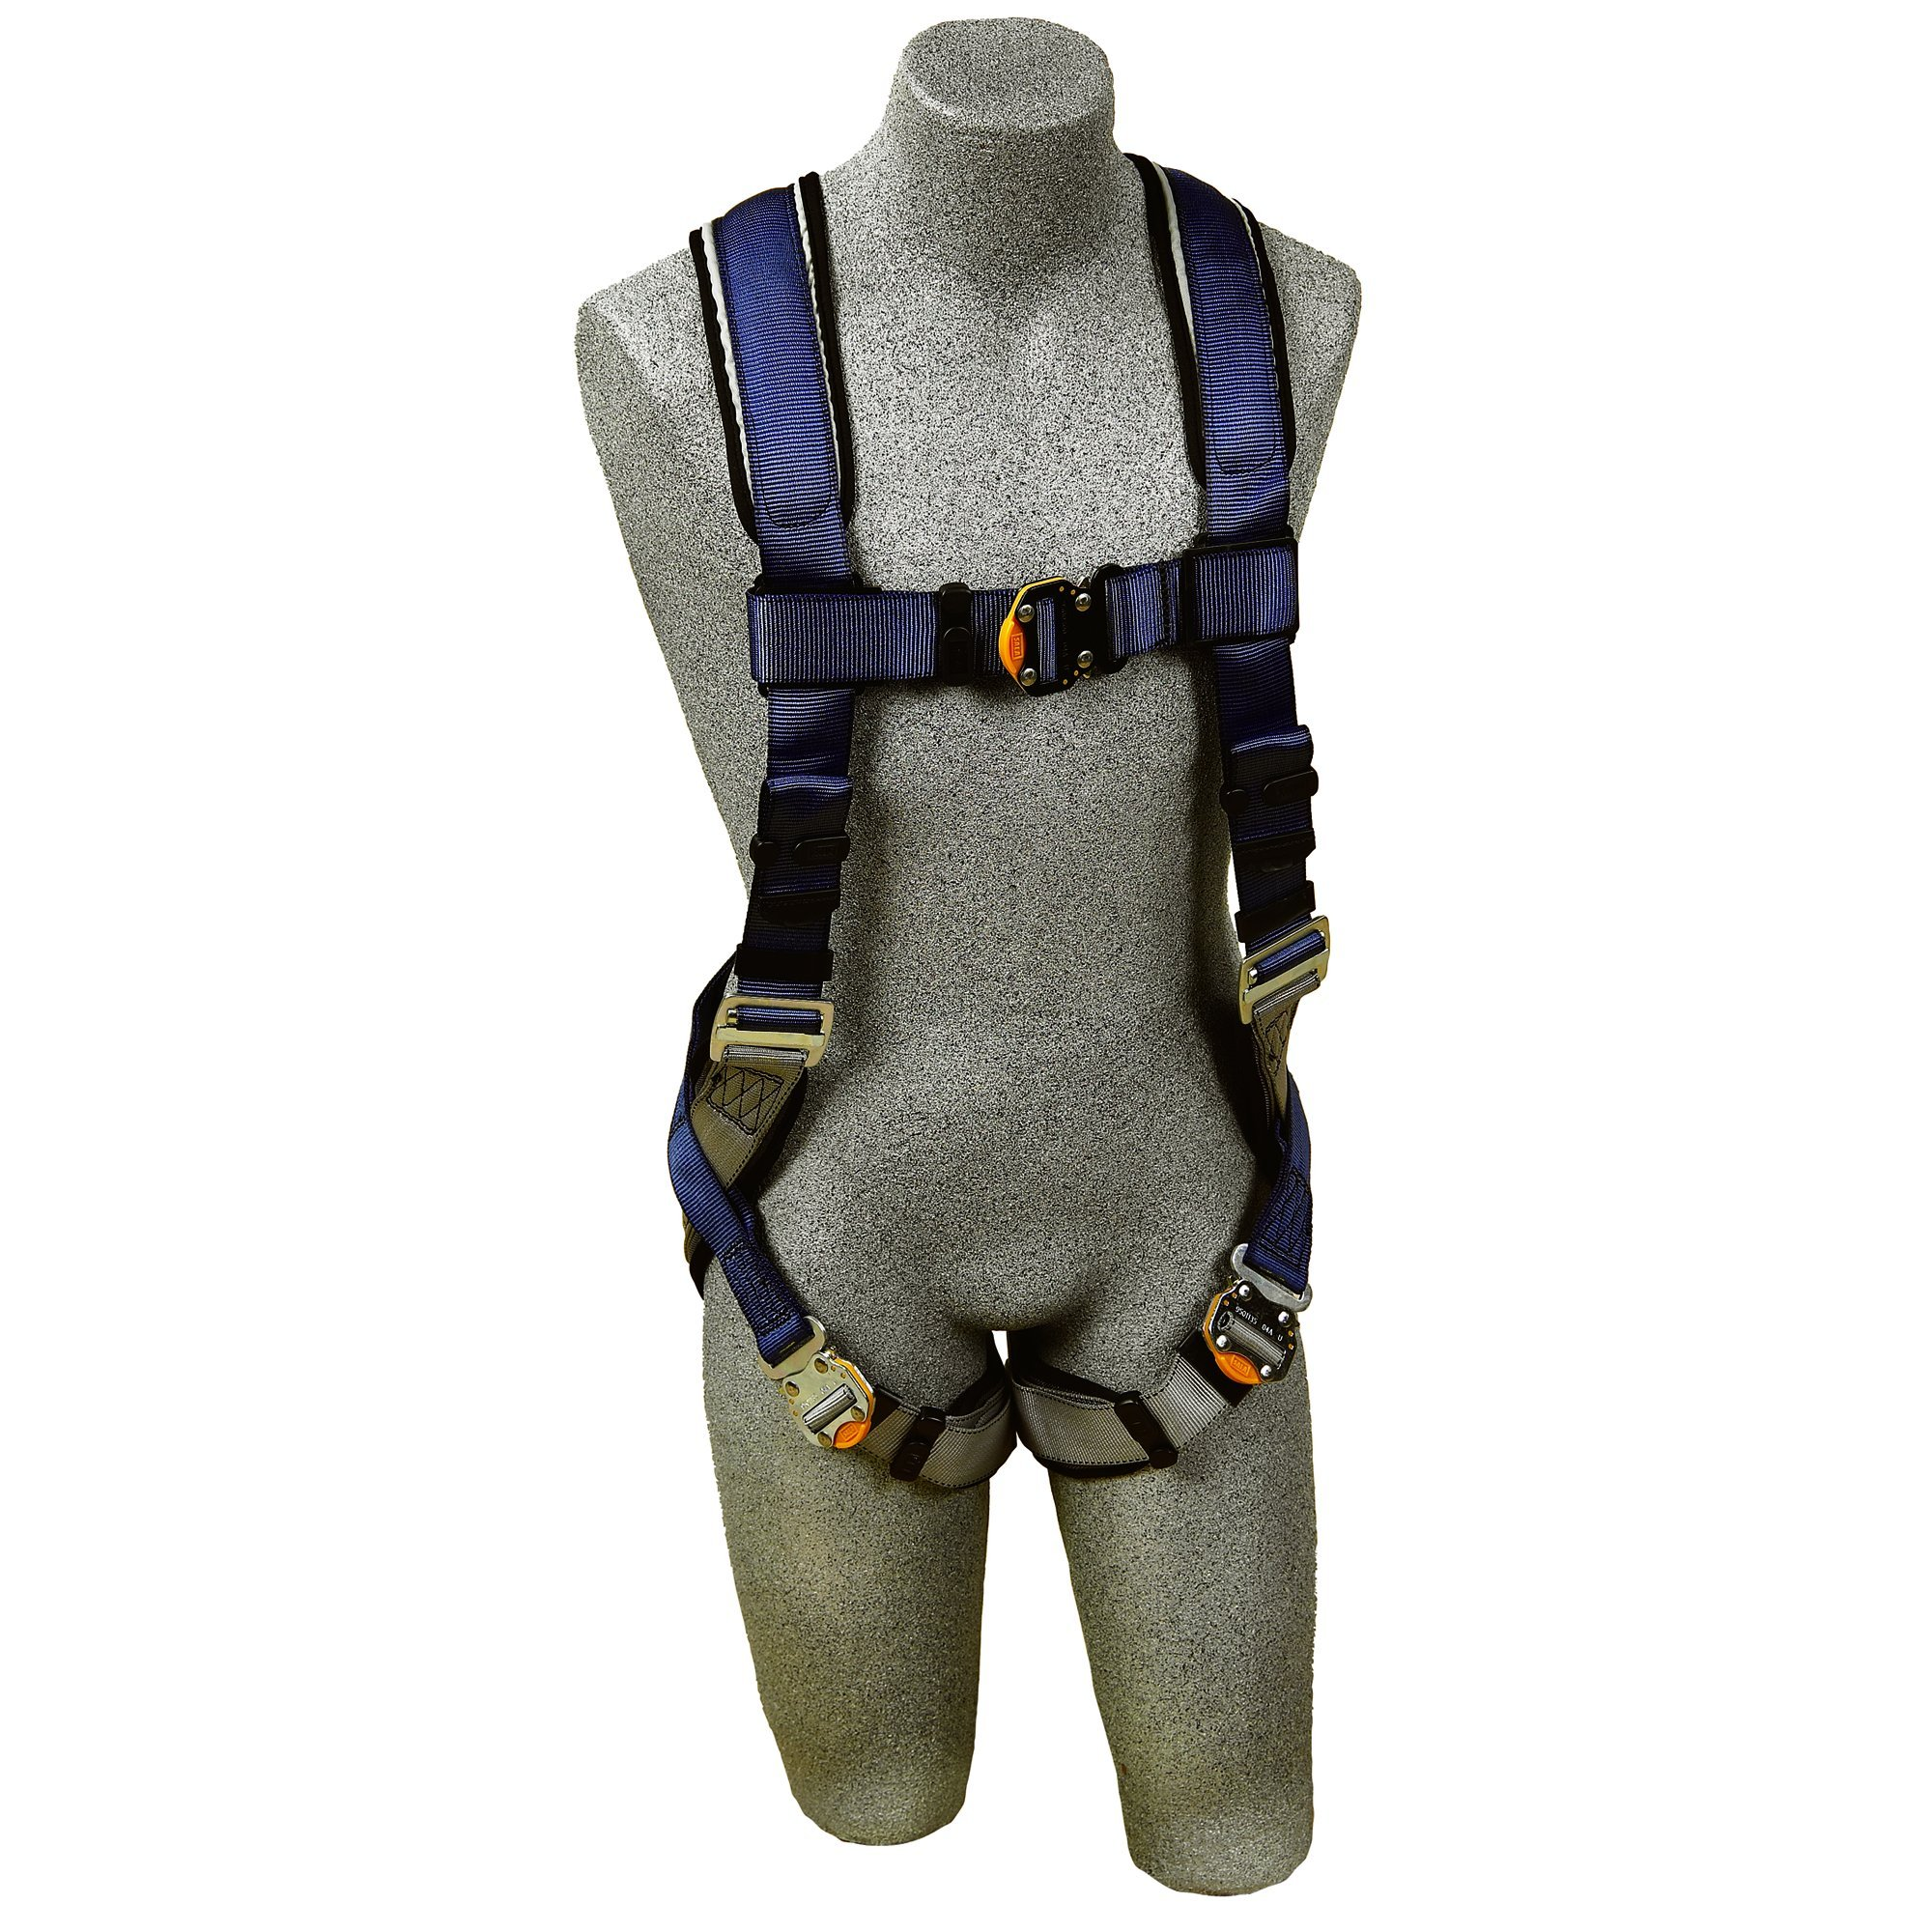 3M DBI-SALA ExoFit Vest-Style Fall Protection Harness Construction 1107977 Back D-ring, Large, 1 EA by 3M Personal Protective Equipment